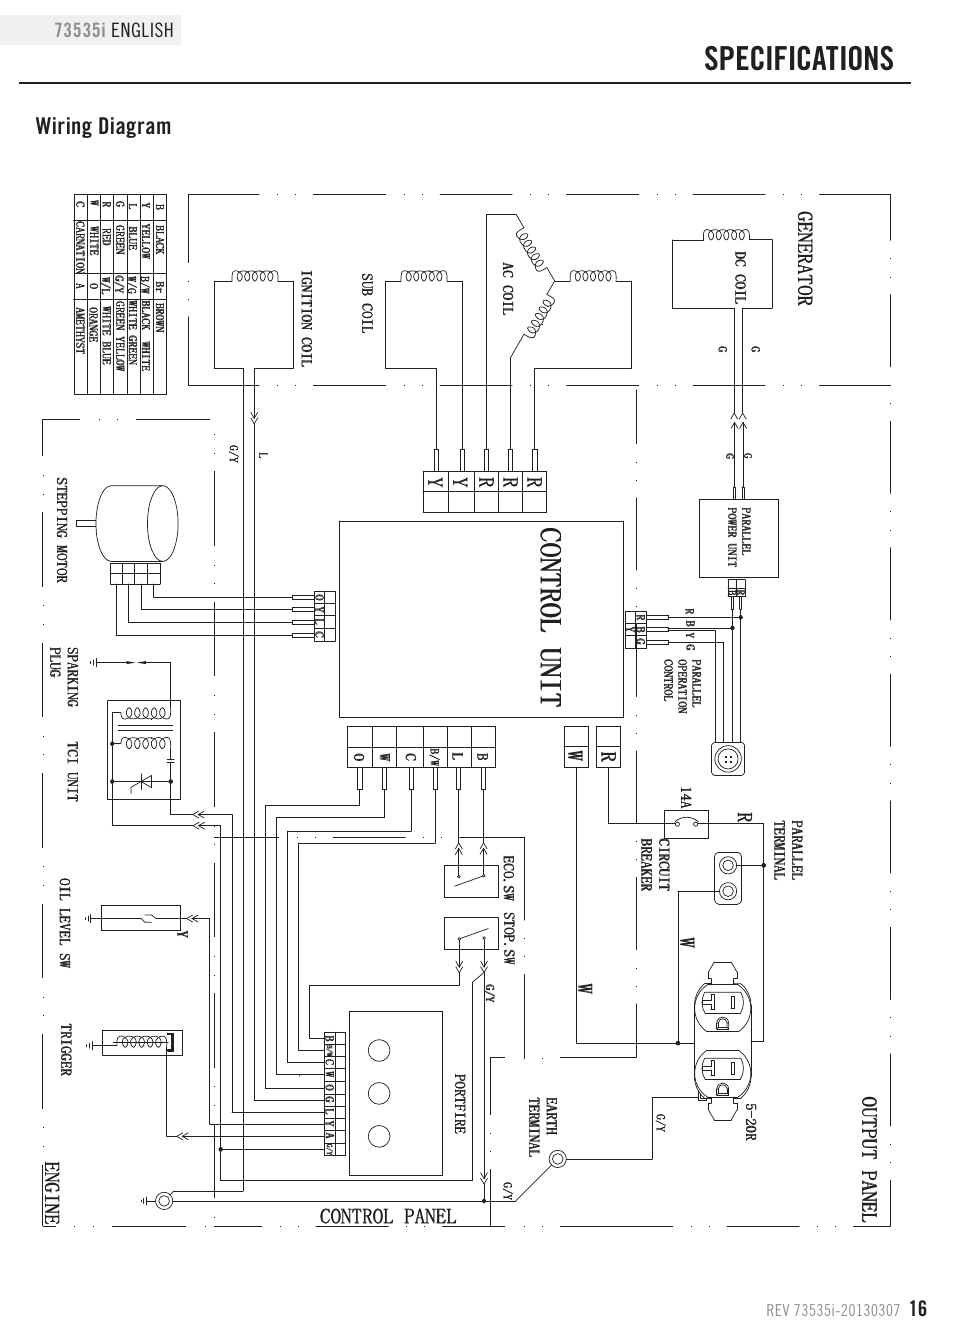 Specifications  Control Uni T  Wiring Diagram